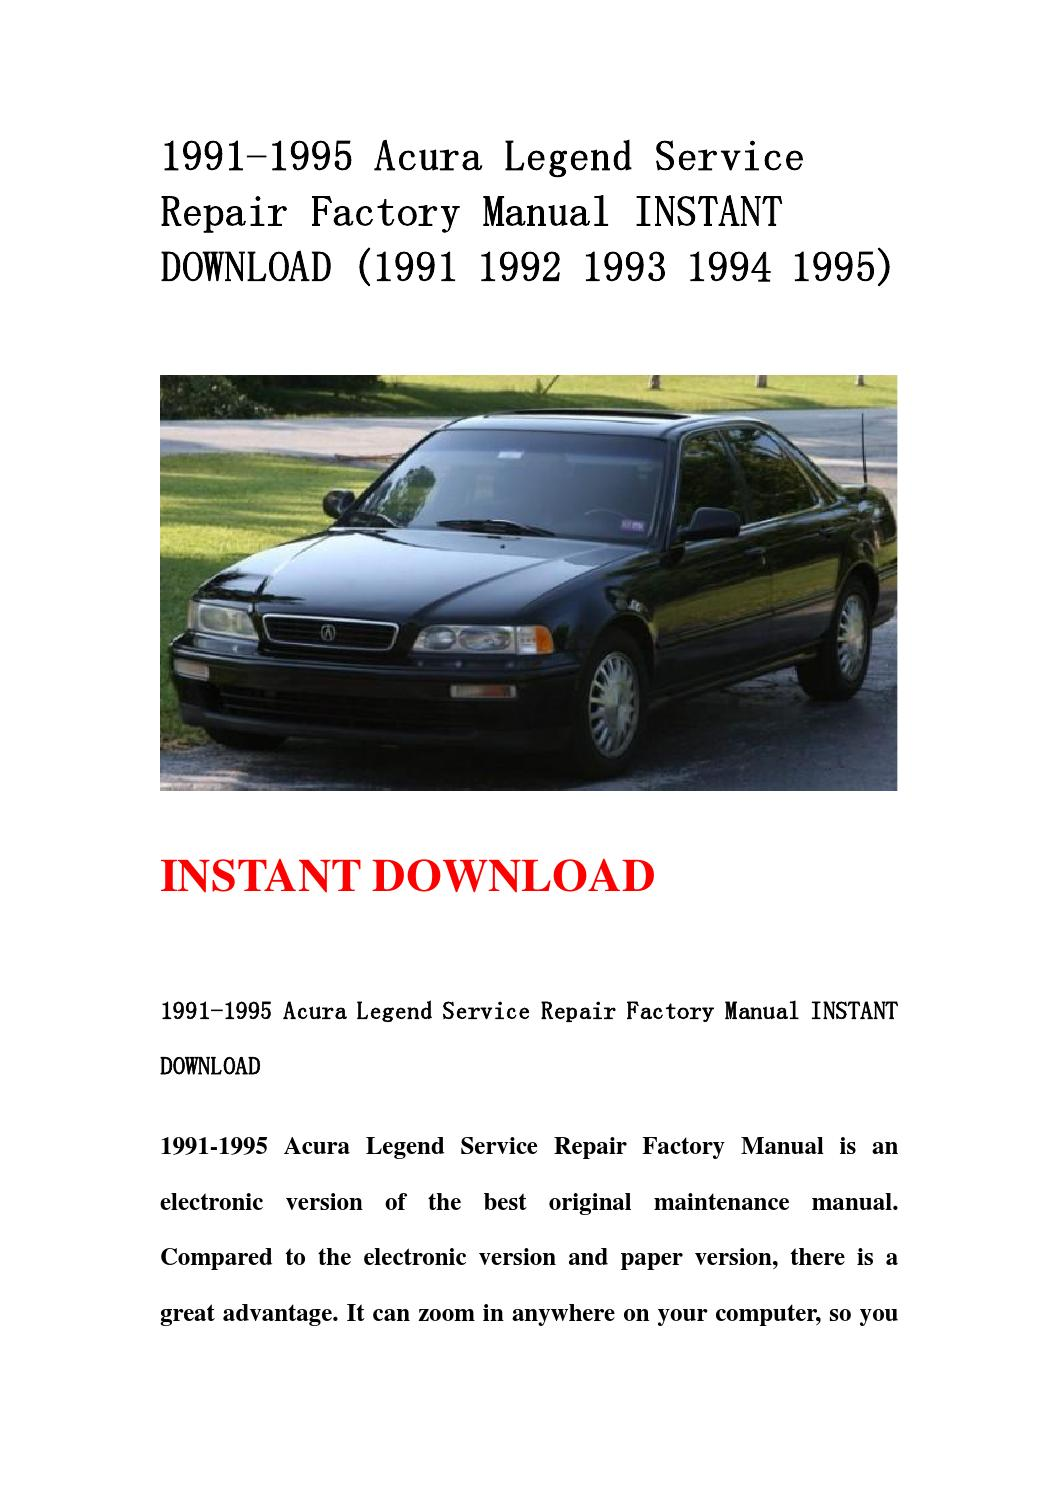 ... auto 2 manual cable Array - acura legend 92 manual pdfdownload free software  programs online rh shutterhill weebly com